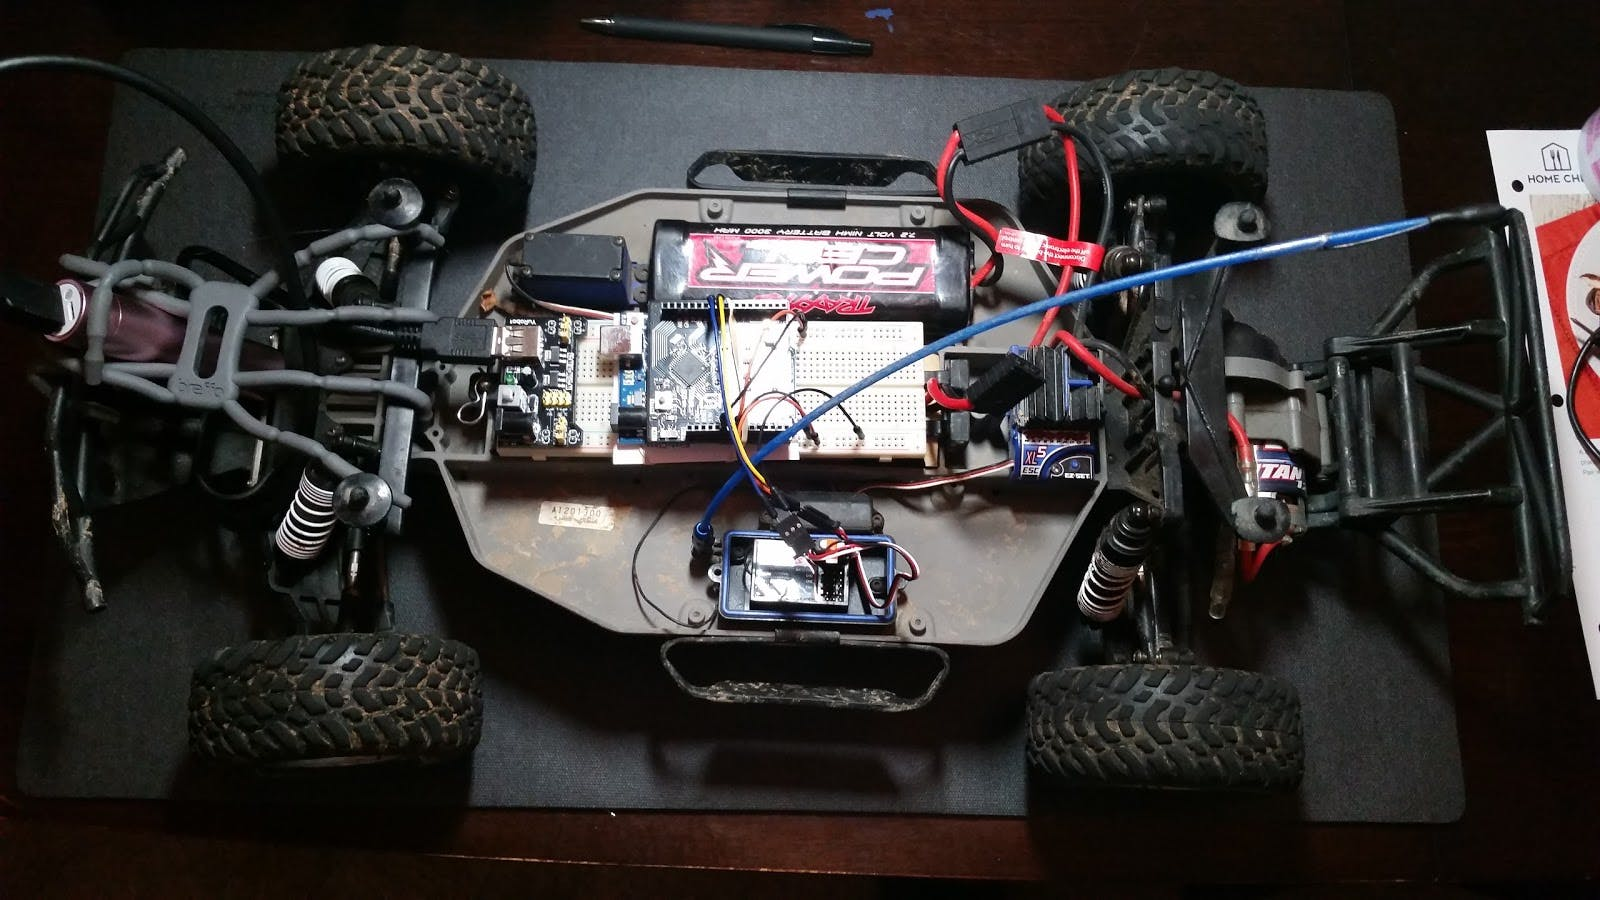 R/C Traxxas Slash with Arduino and 1Sheeld